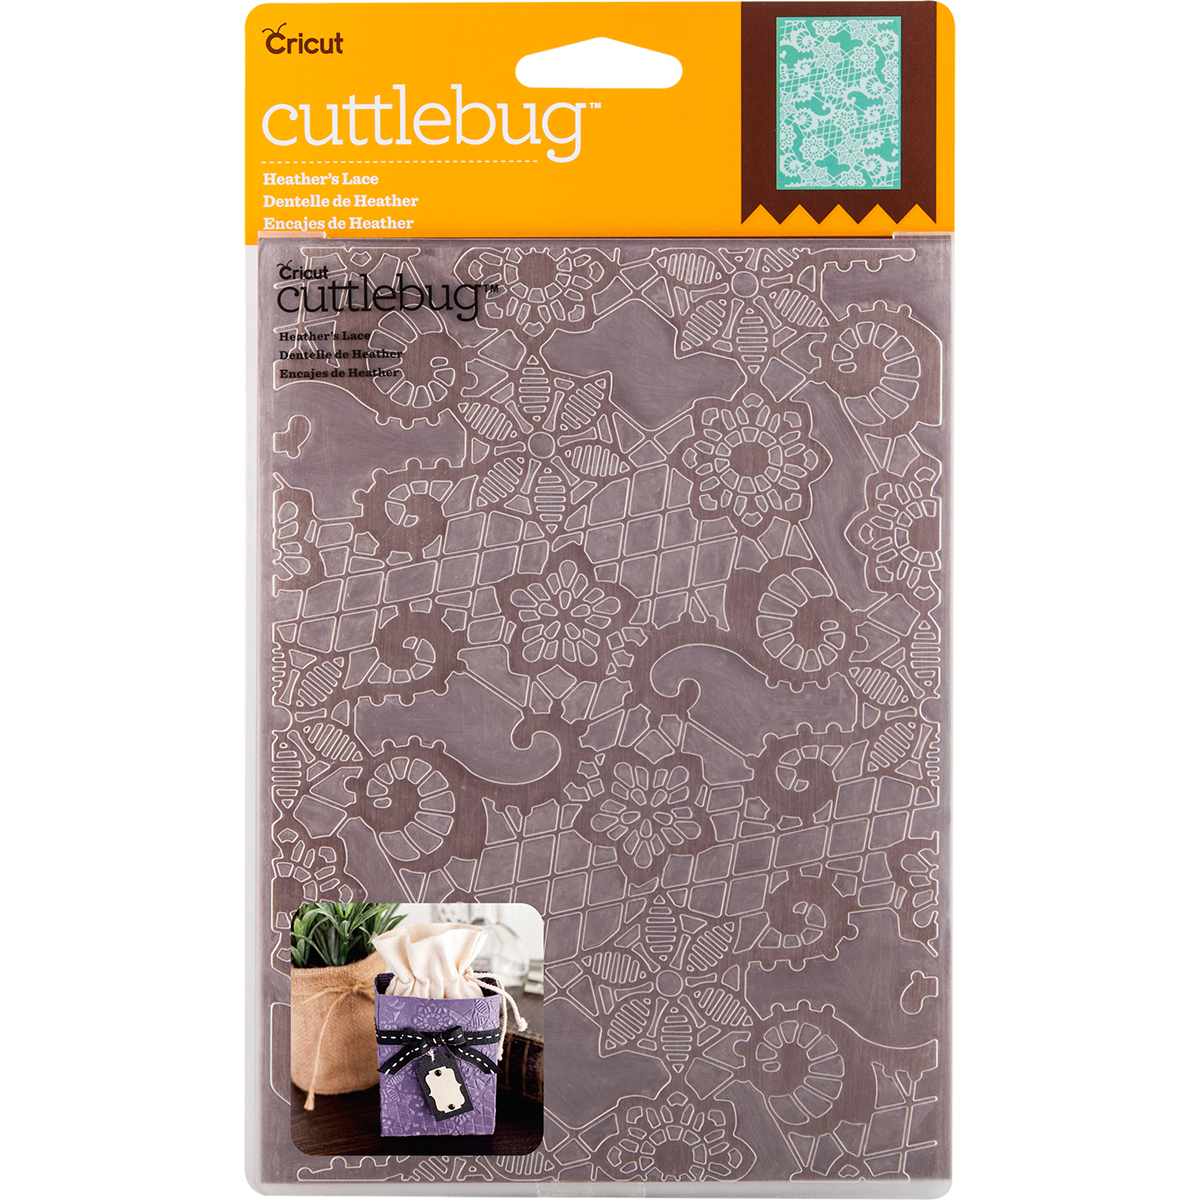 "Cuttlebug 5"" x 7"" Embossing Folder, Heather's Lace"